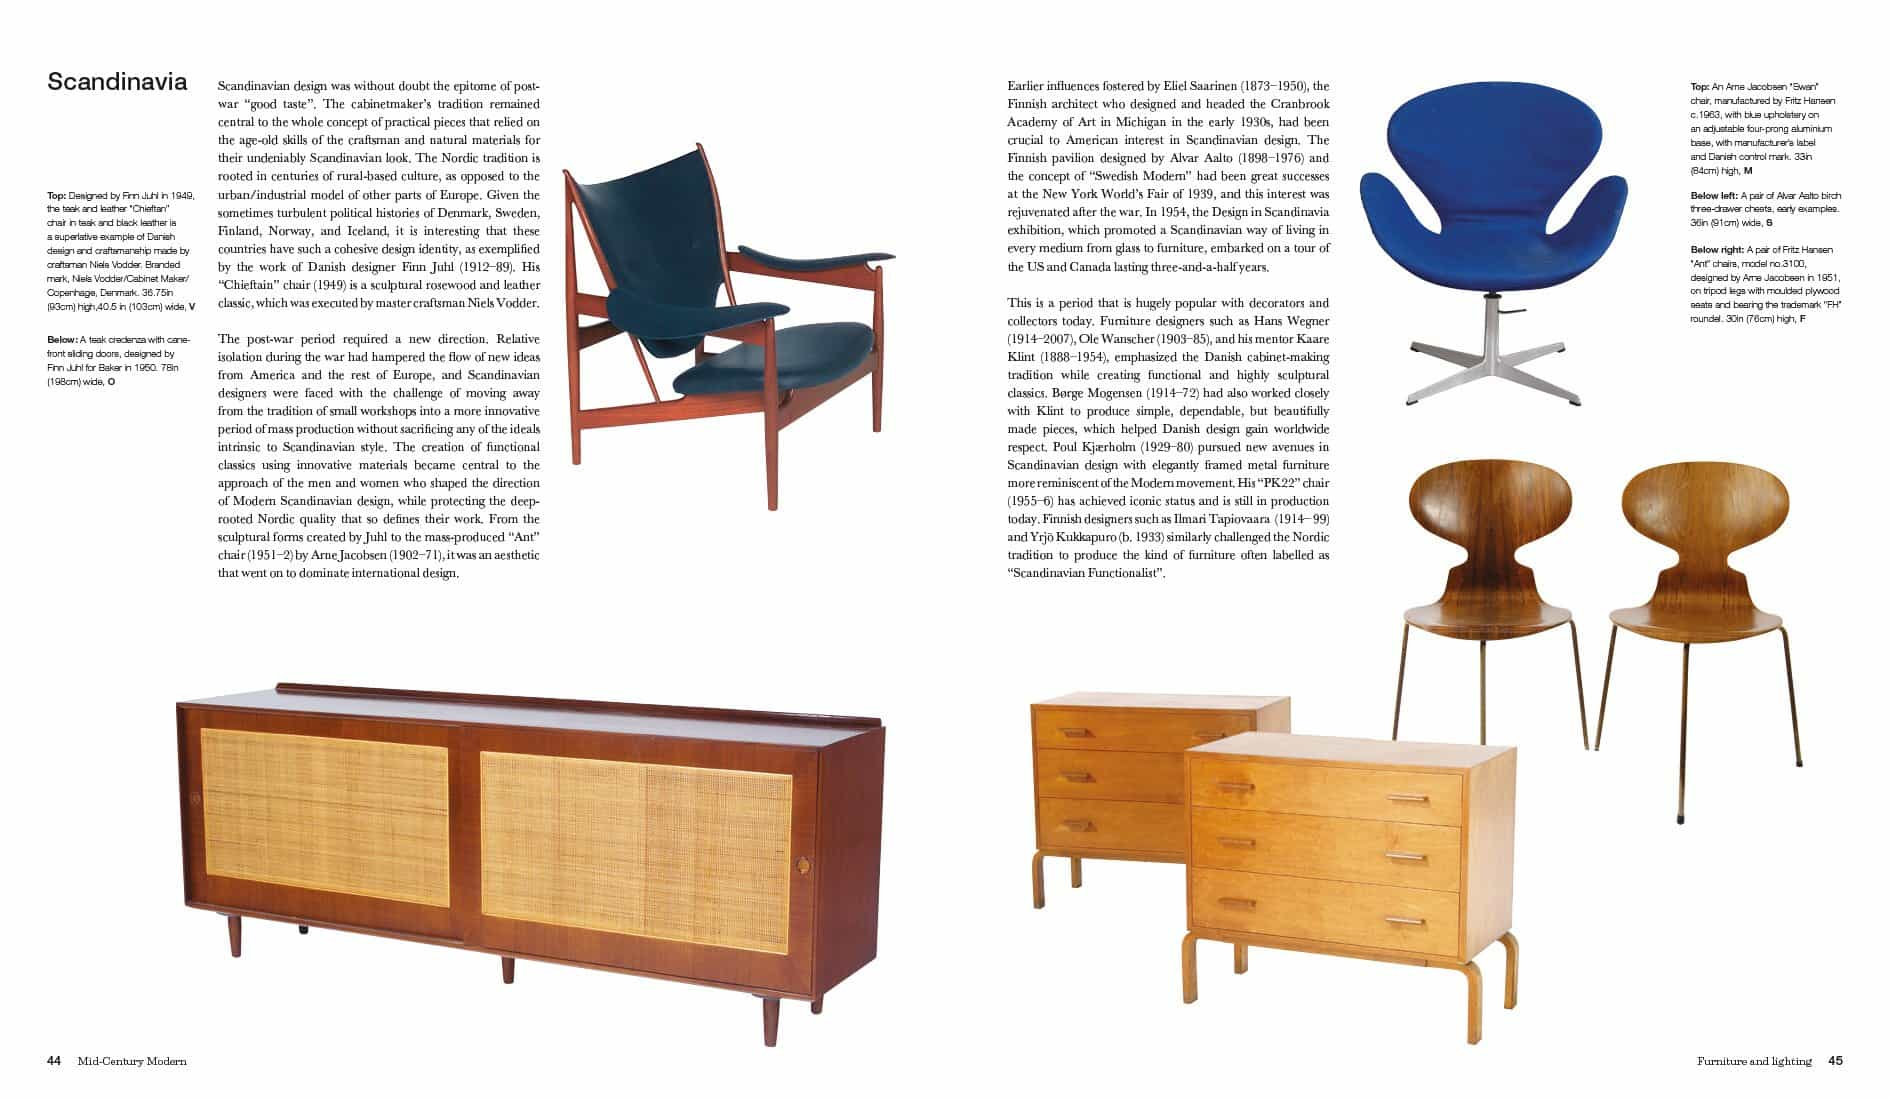 this is inside Miller's Mid-Century Modern- Living with Mid-Century Modern Design book